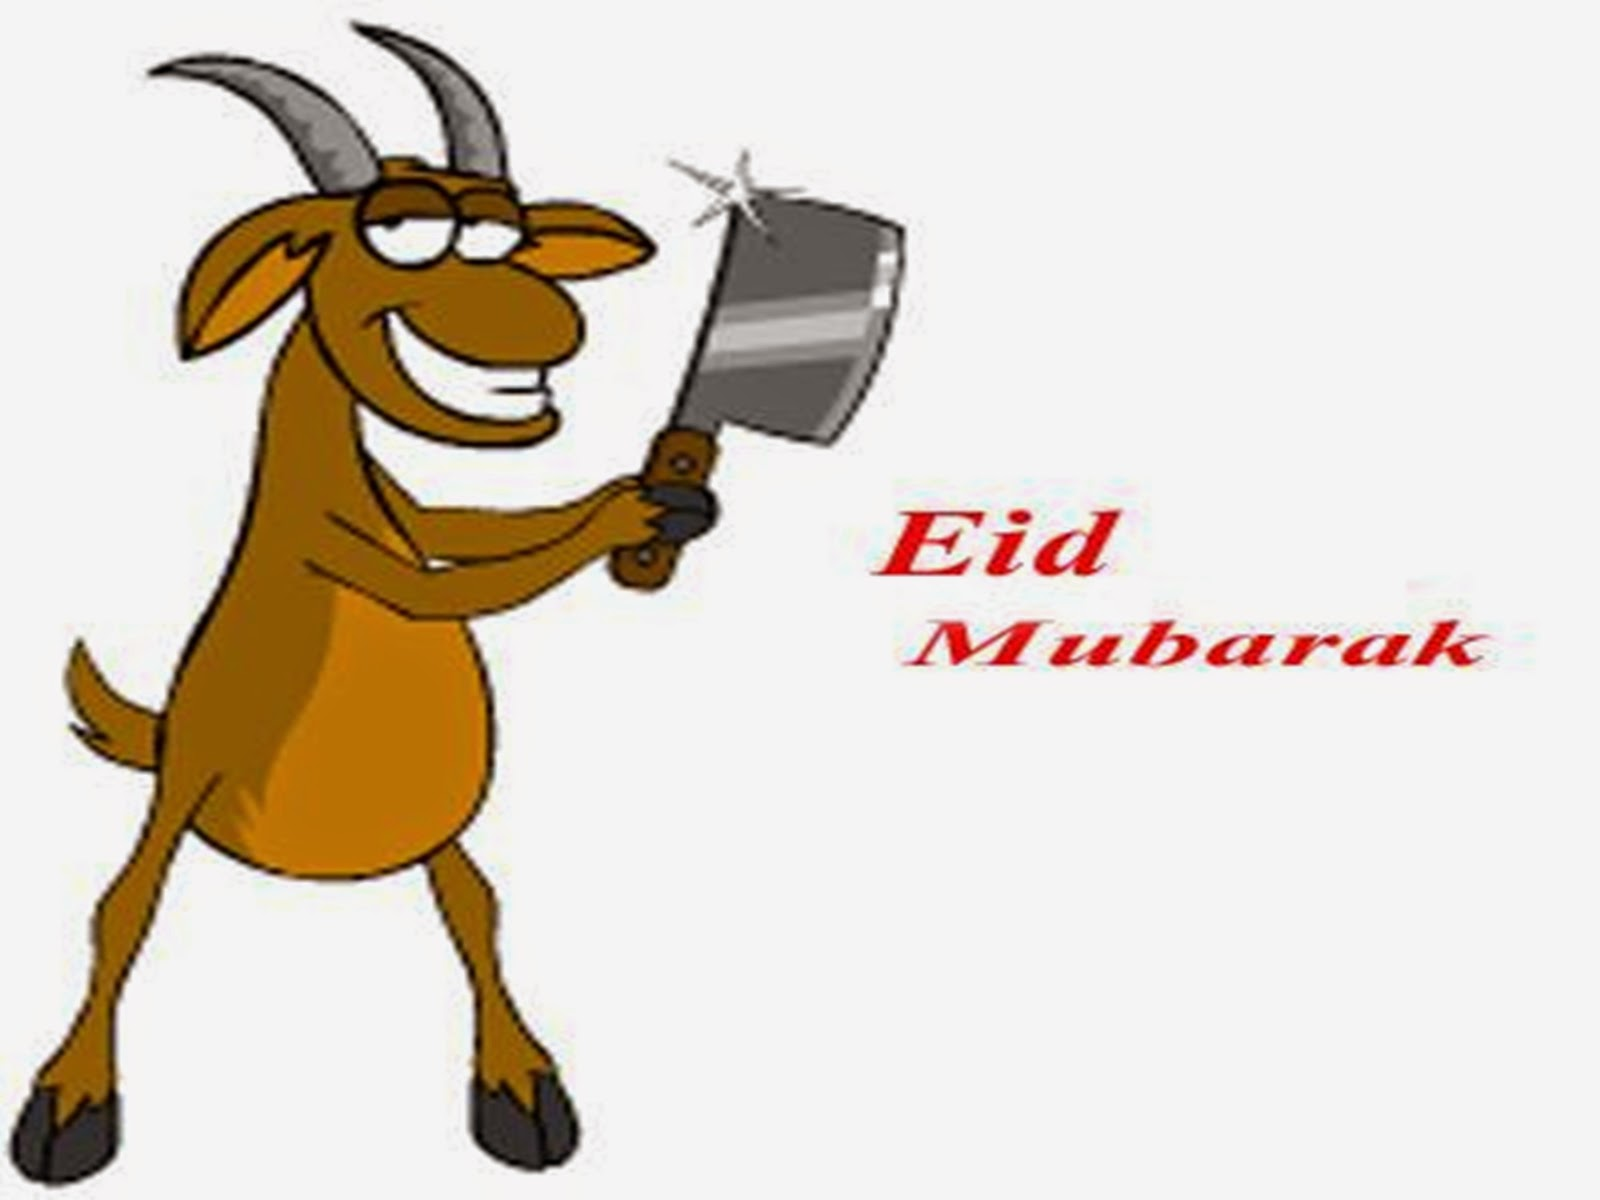 http://suddensms.blogspot.com/search/label/Eid%20Ul%20Adha%20SMS?max-results=1